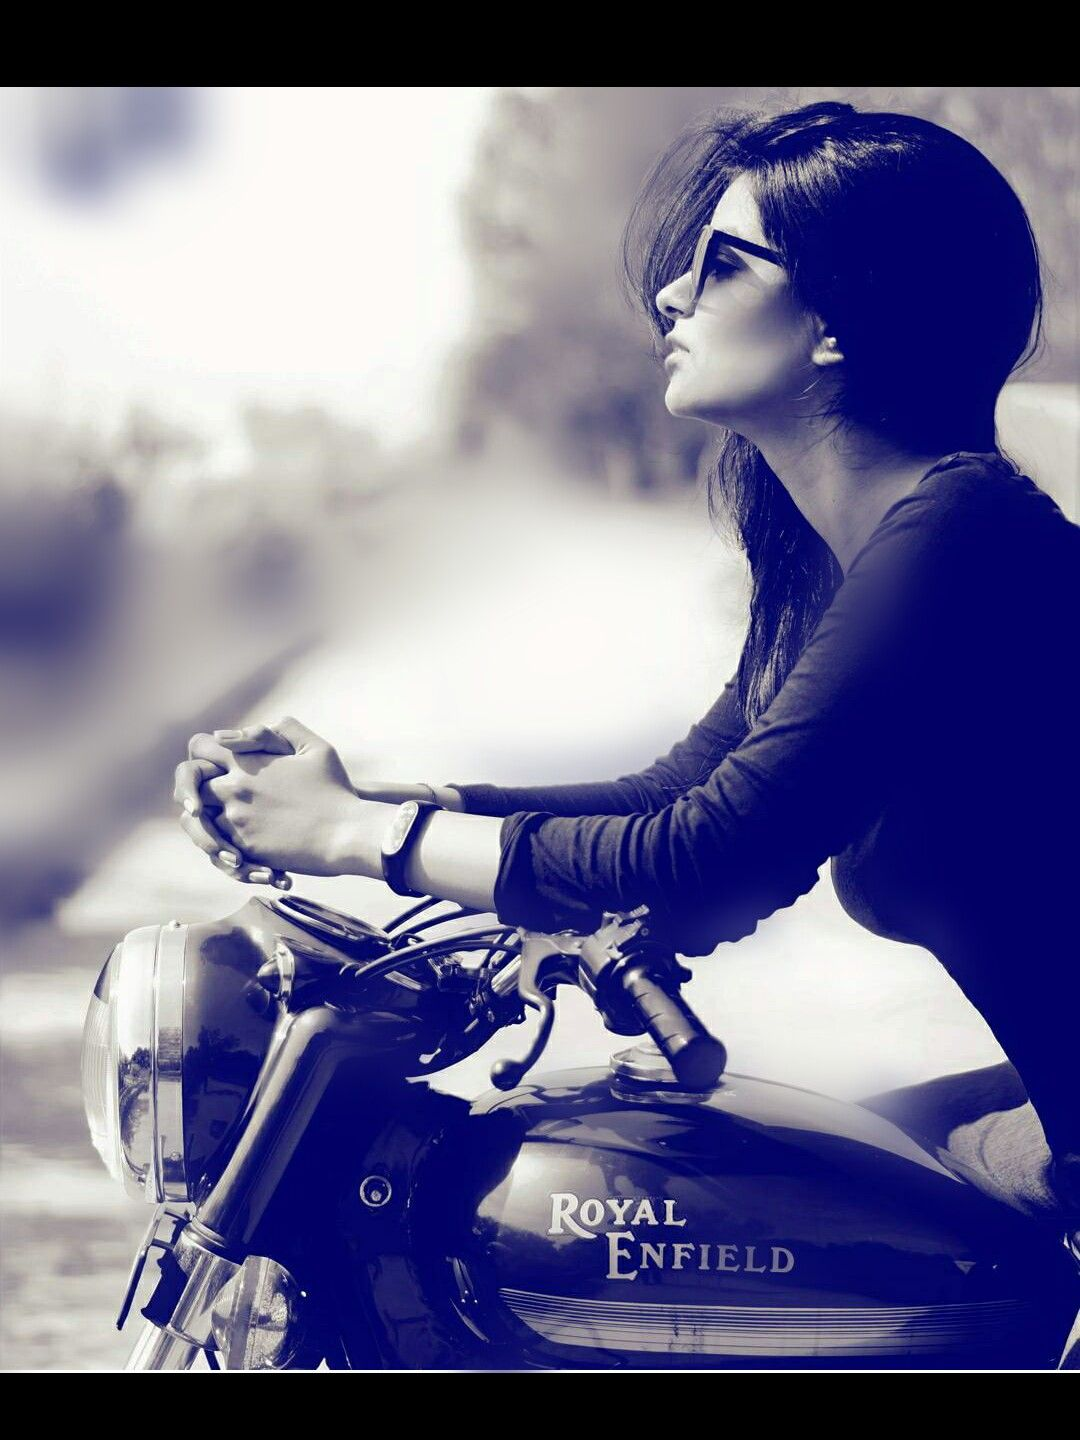 @AMAN❤ Motorcycle Posters, Motorcycle Humor, Motorcycle Style, Girl Riding  Motorcycle,